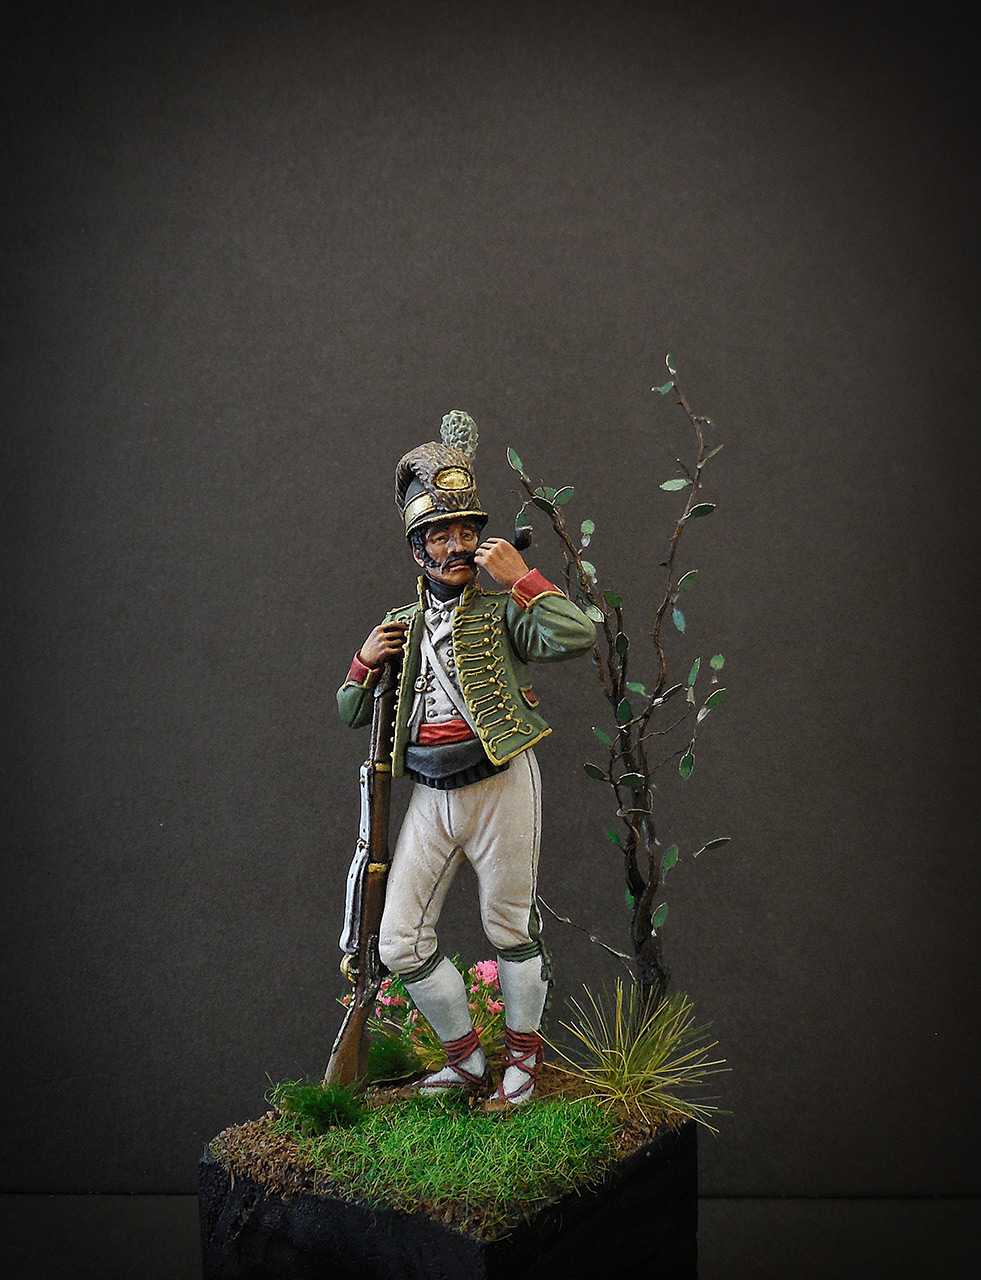 Figures: Private, Catalonian light infantry, Spain, 1807-08, photo #2